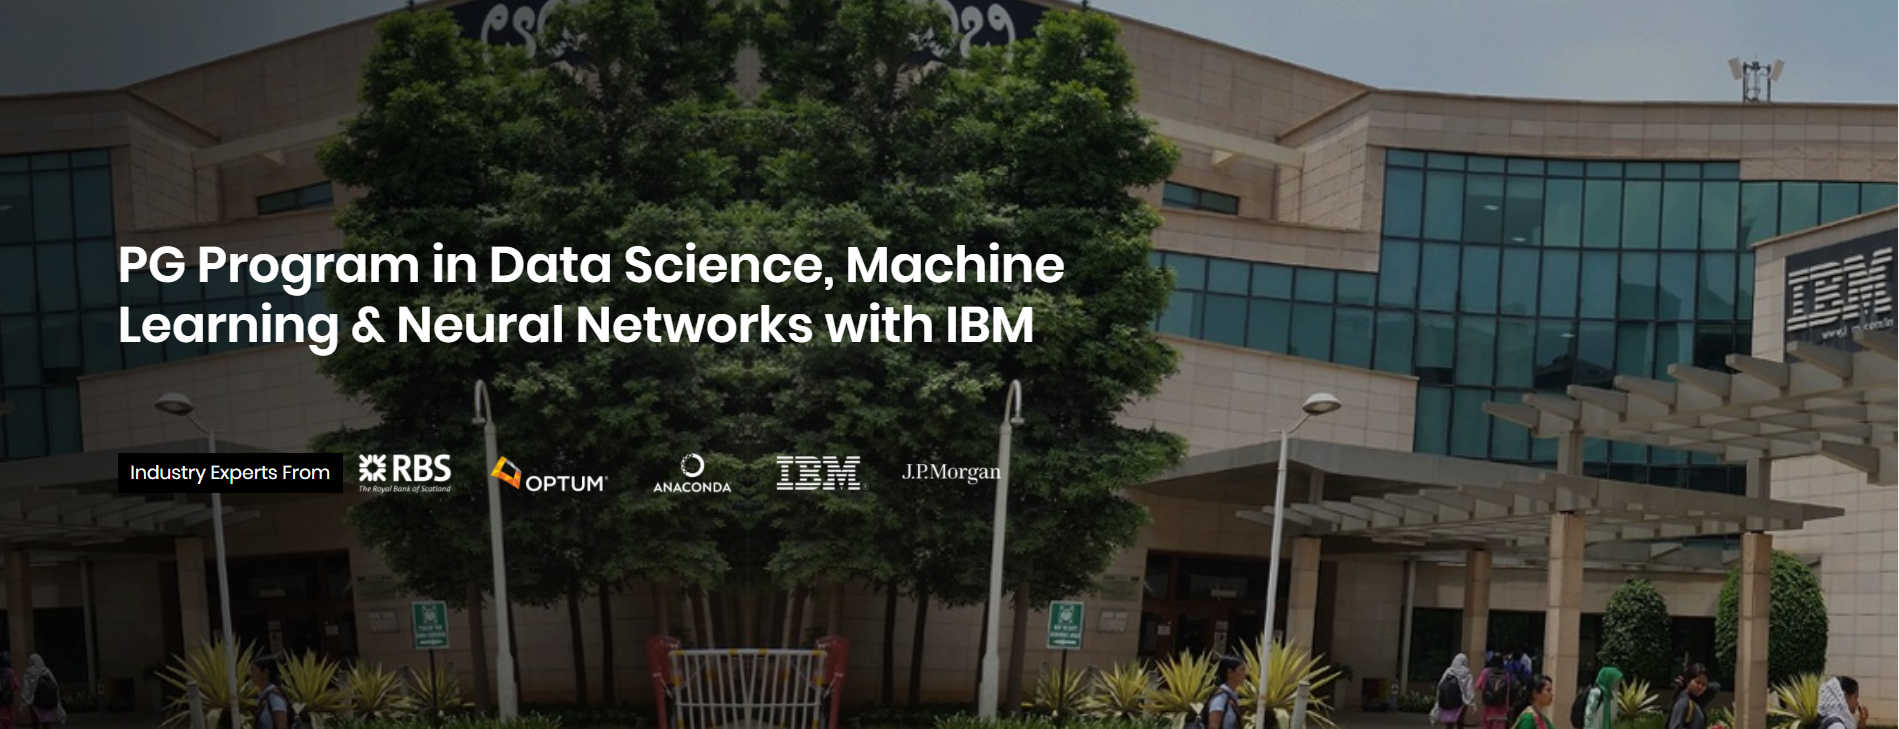 PG Program in Data Science, Machine Learning & Neural Networks in collaboration with IBM